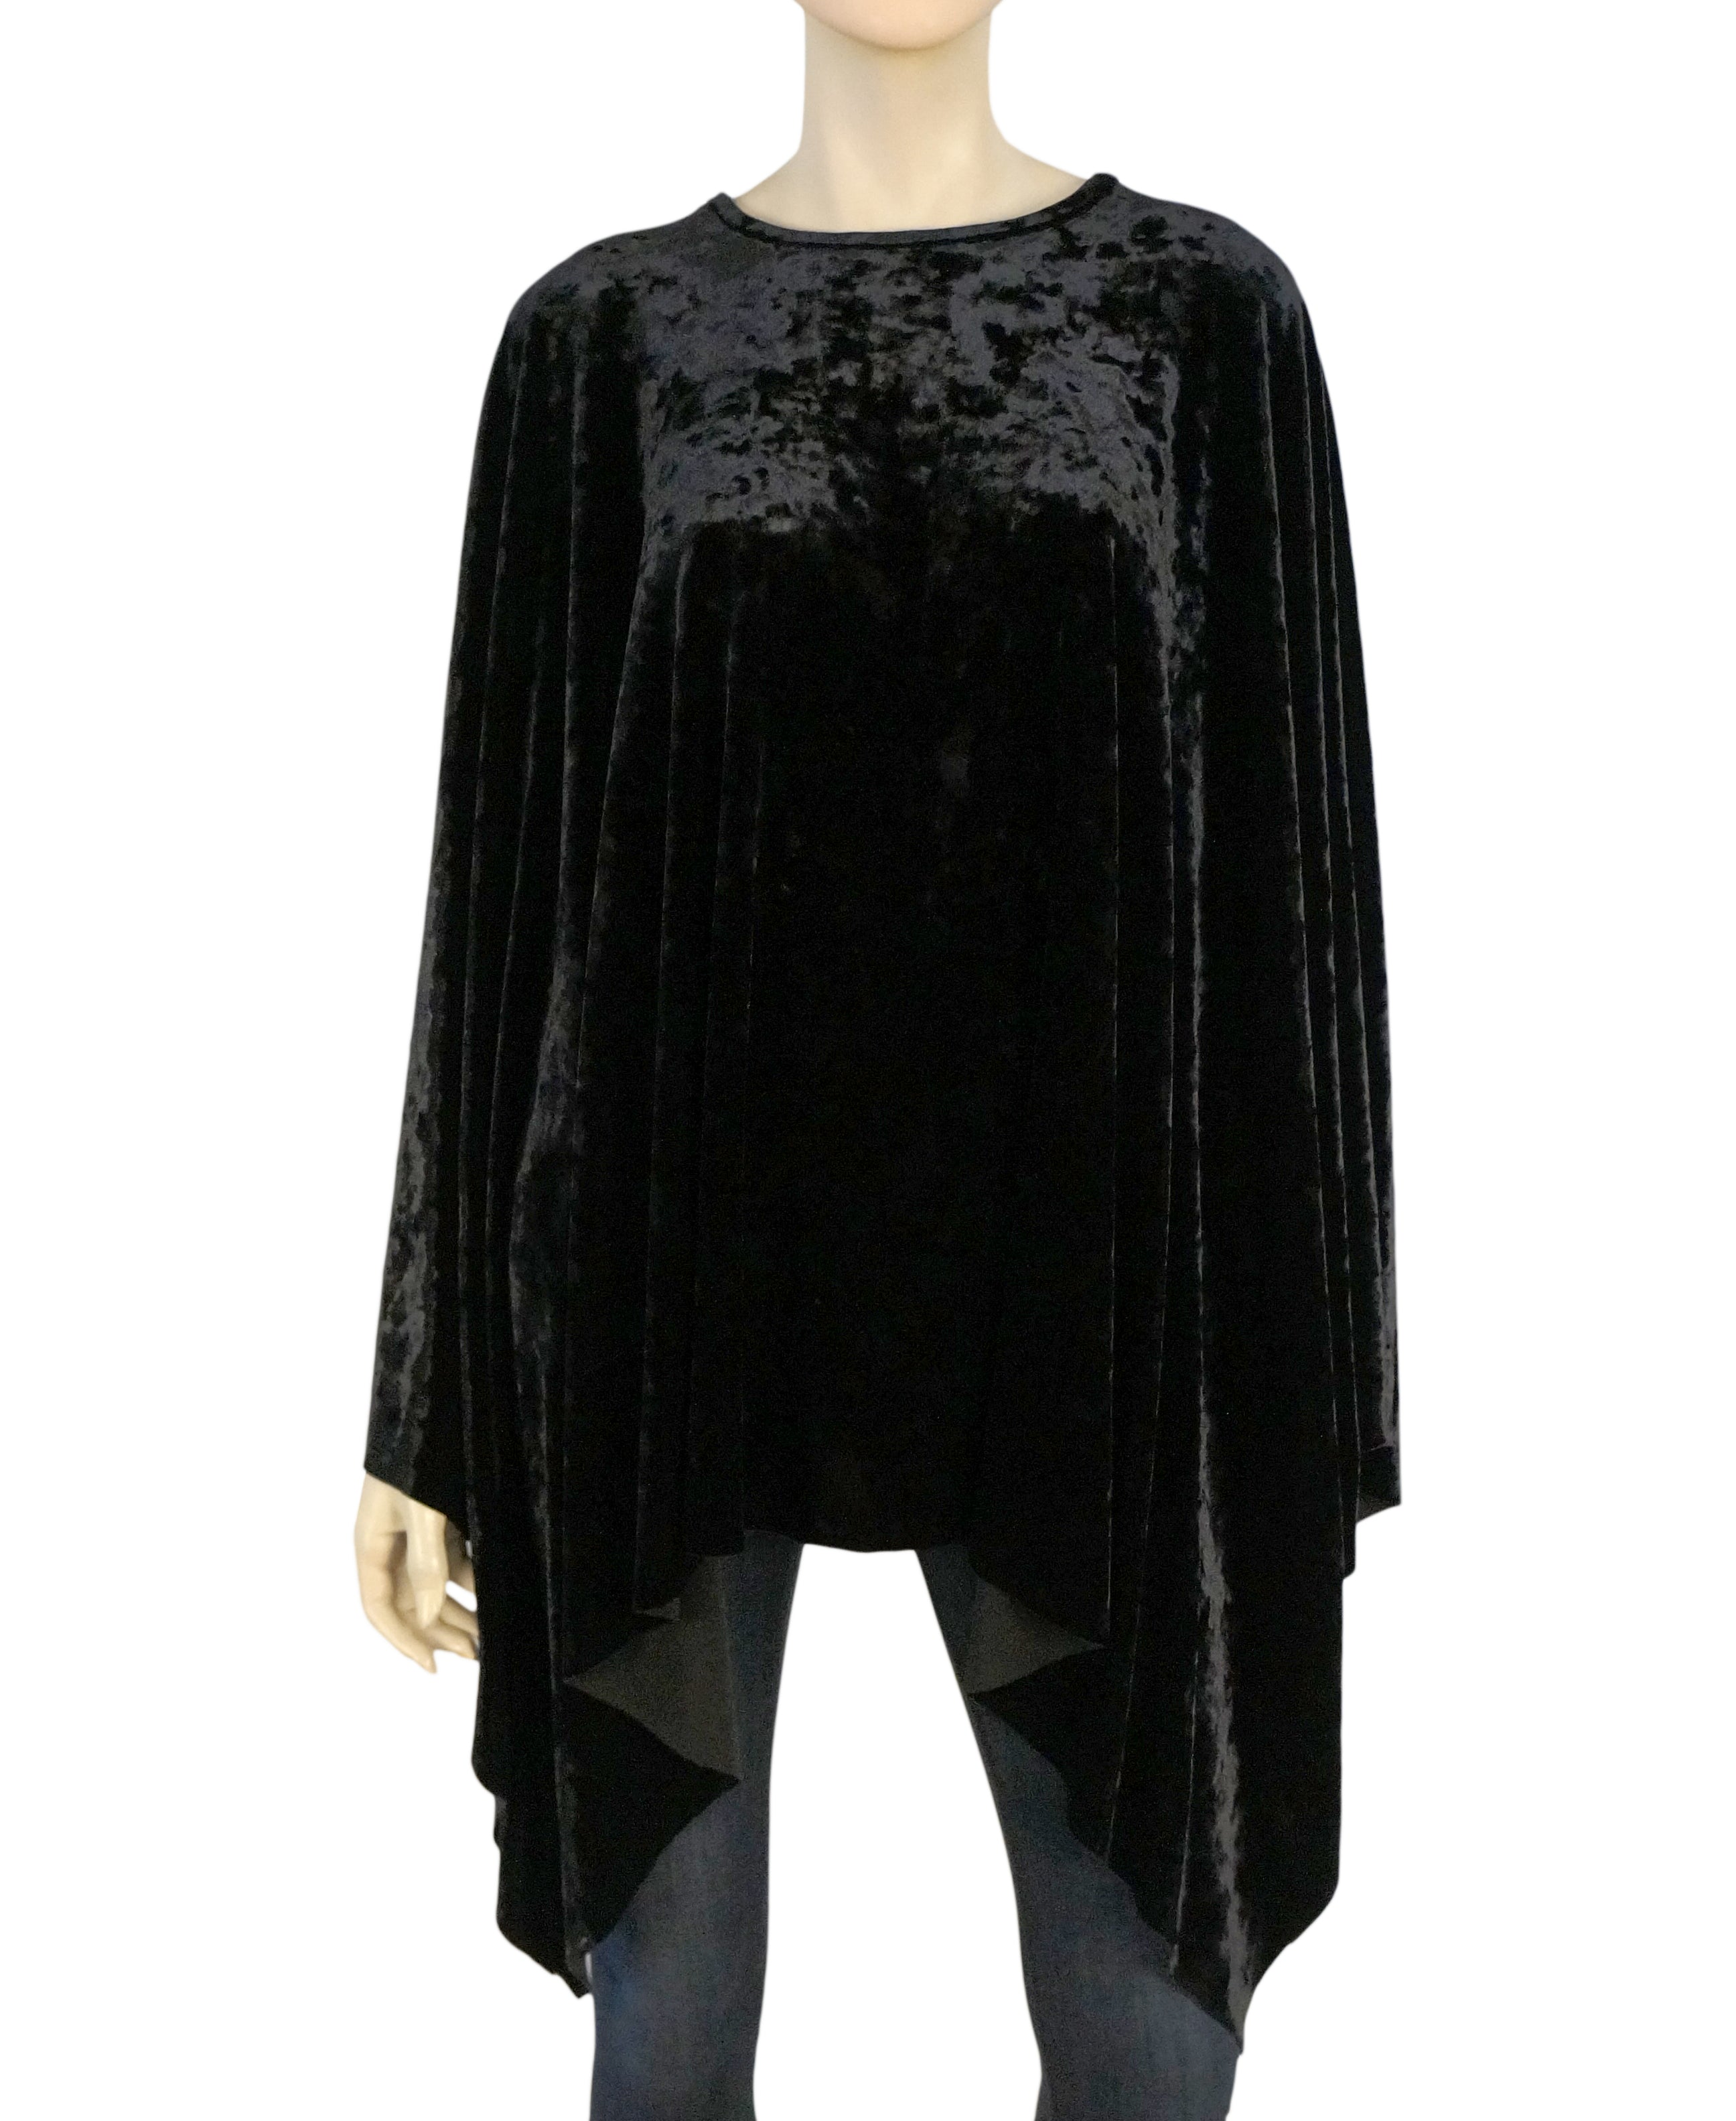 20d6c9e79 KABUKI Tracy Thomson Black Velvet Poncho Evening Cape OSFM – LaLaStyle